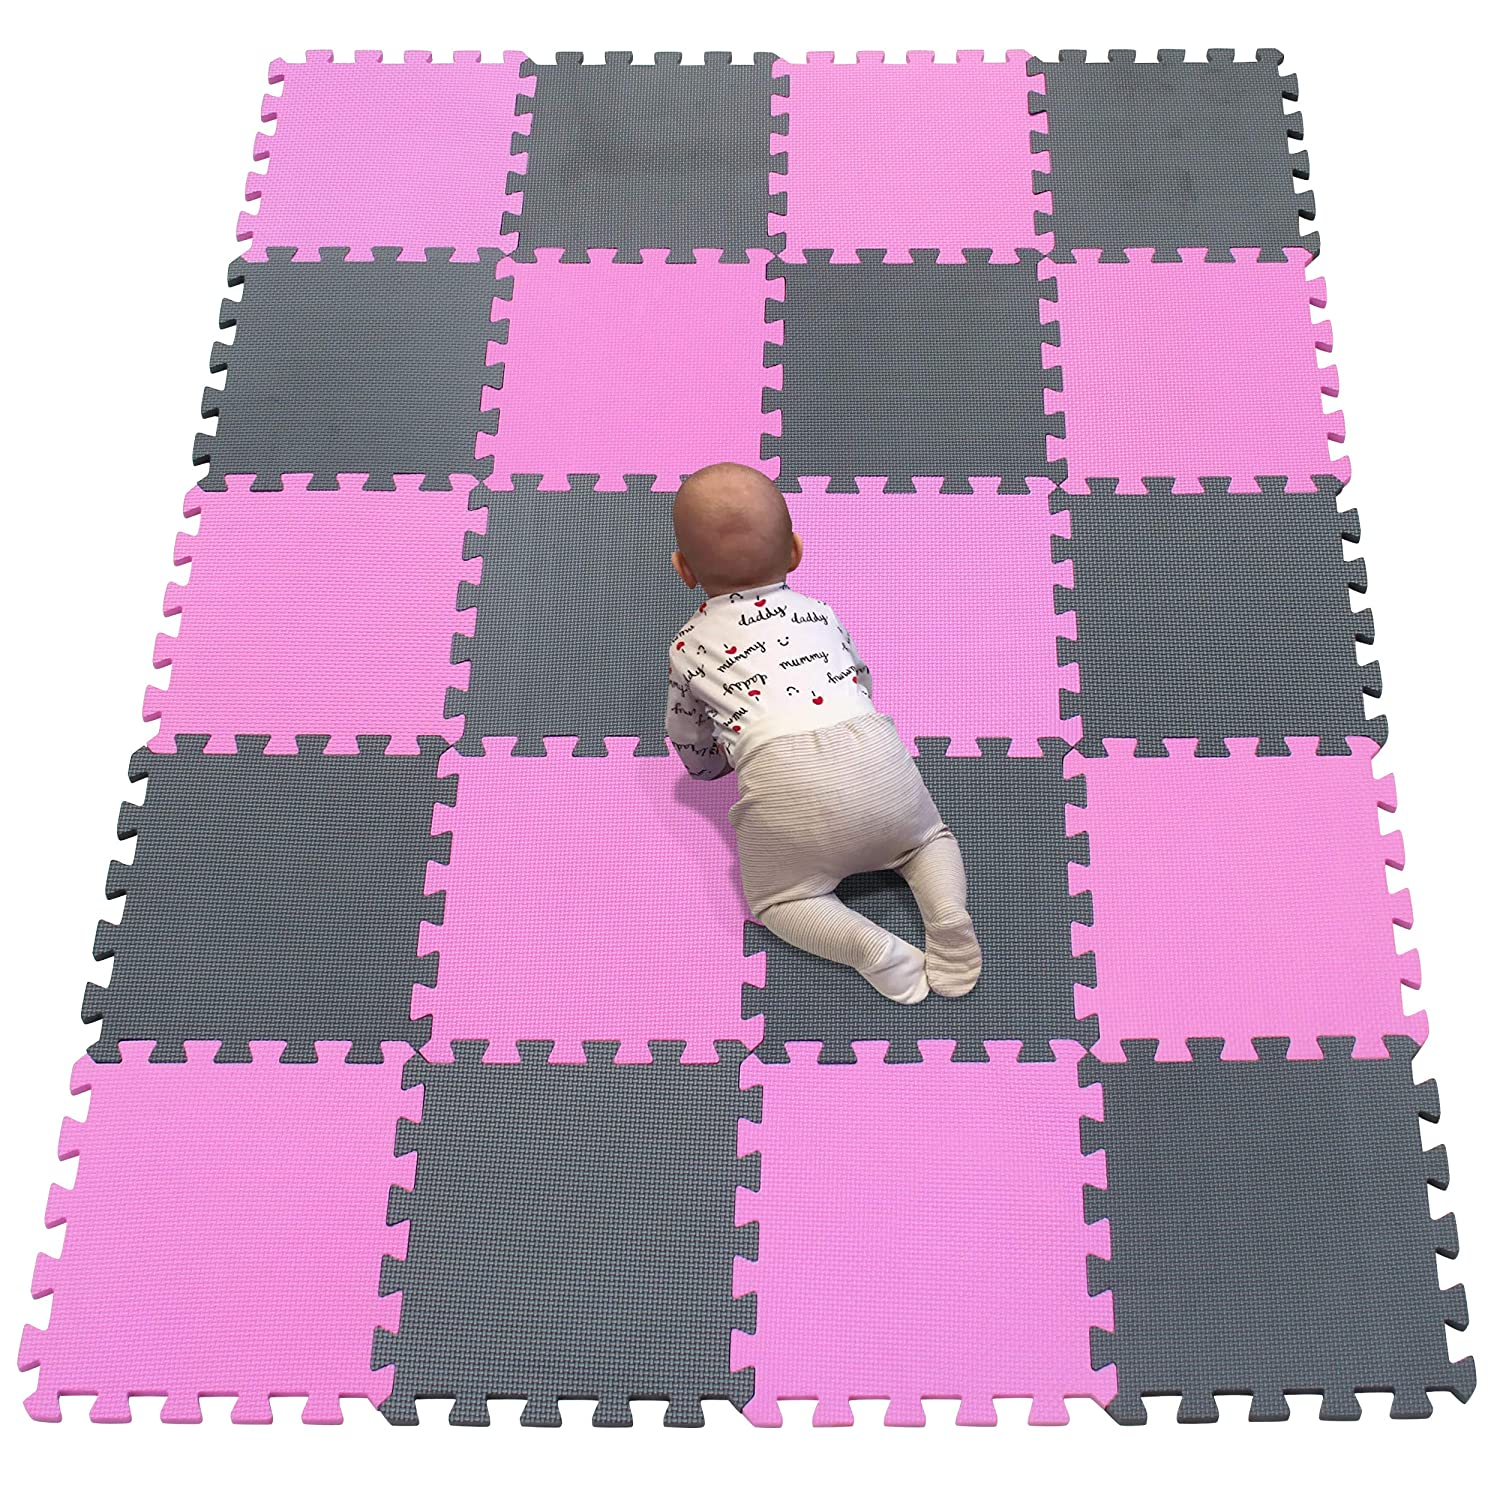 Tucson Mall YIMINYUER excellence Large Mats Soft Foam_Perfect Ide Protection for Floor